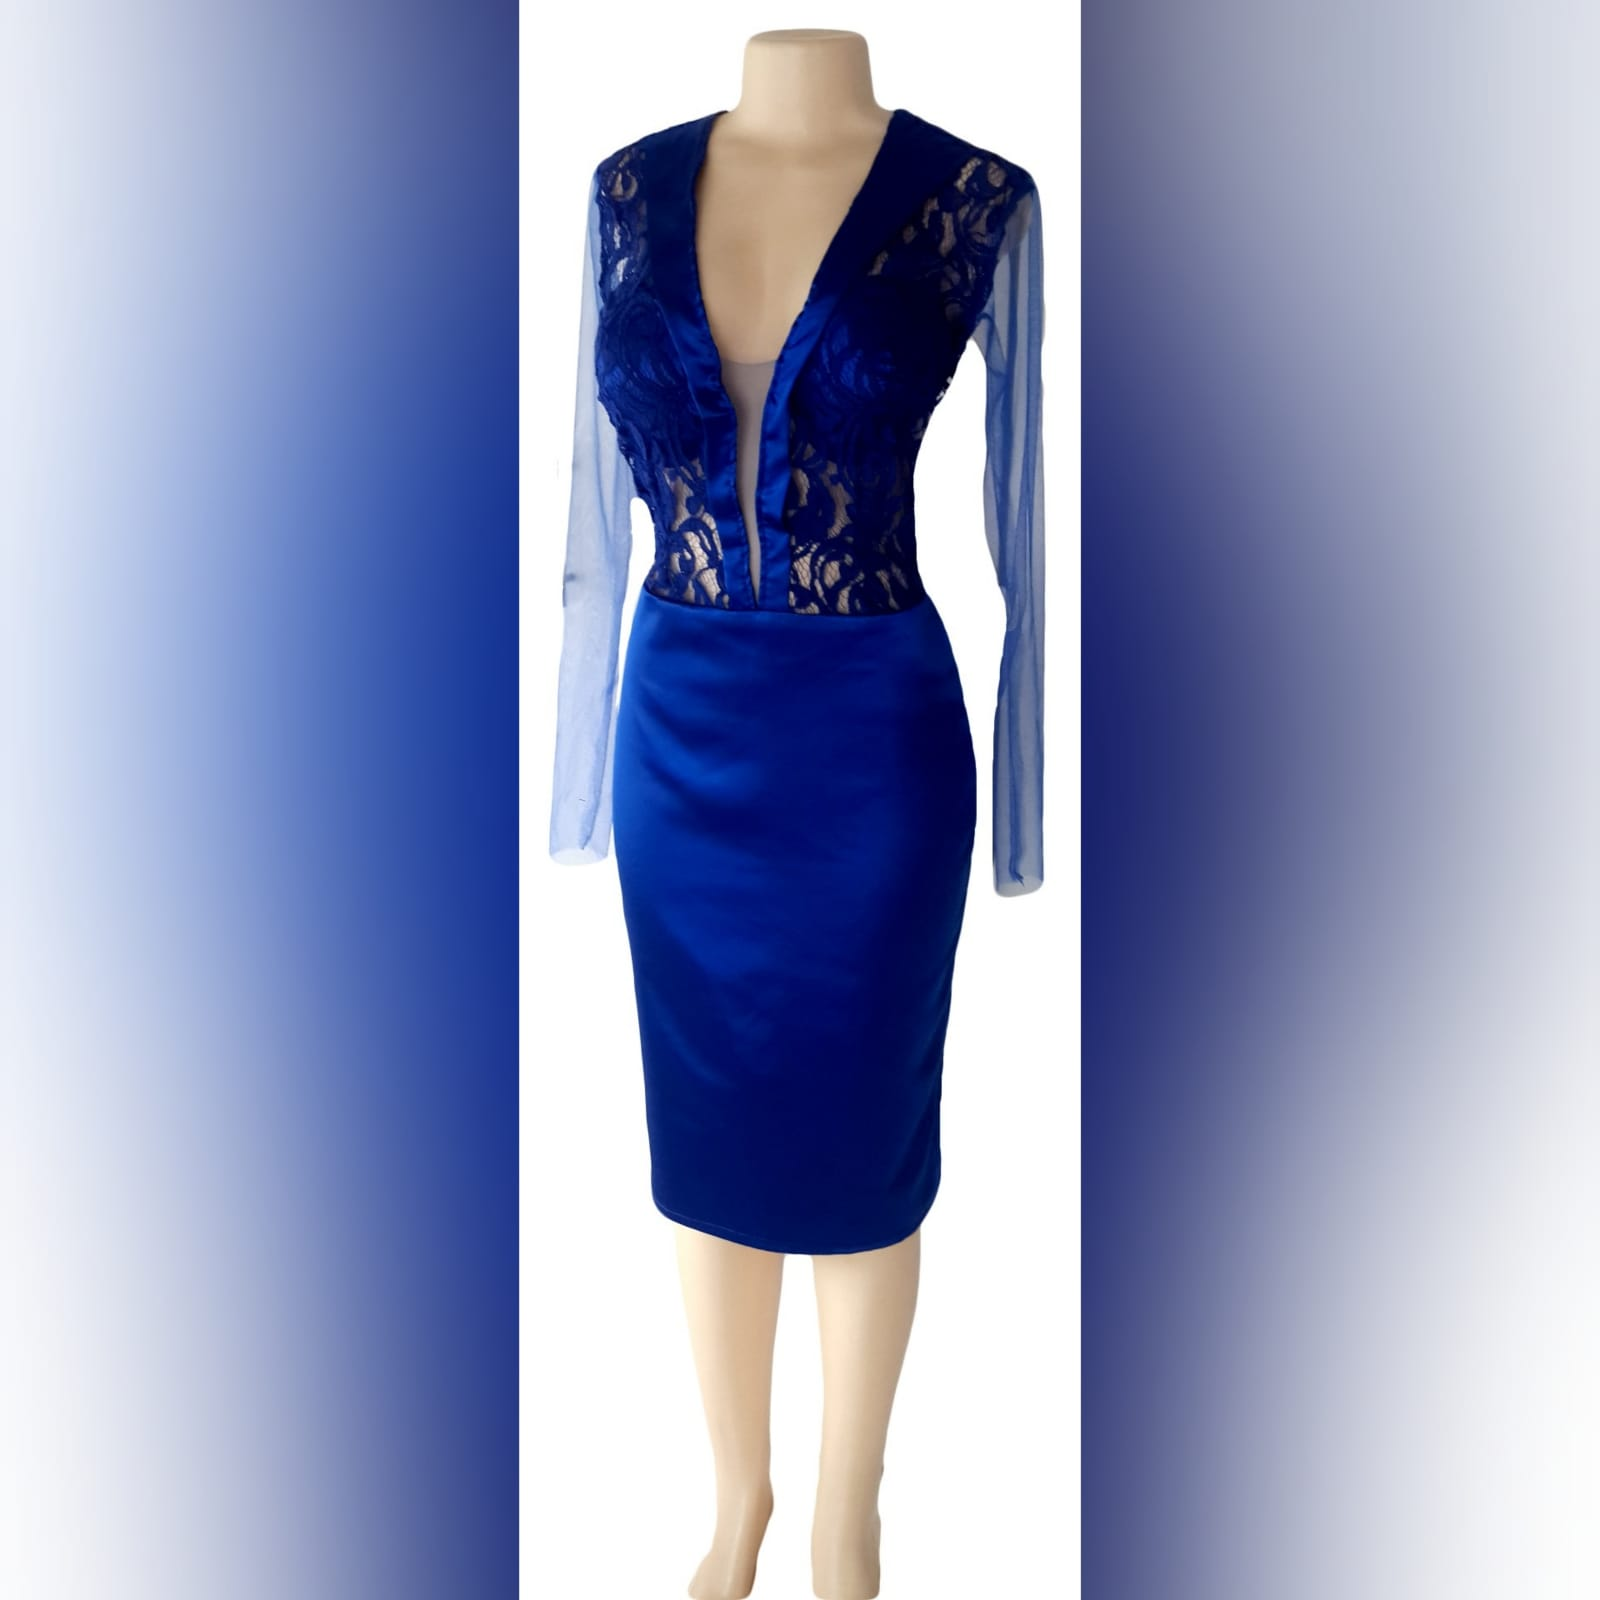 Royal blue short fitted satin party evening dress 5 royal blue short fitted satin party evening dress, with a lace bodice with satin collar detail and an open back, with tulle long sleeves